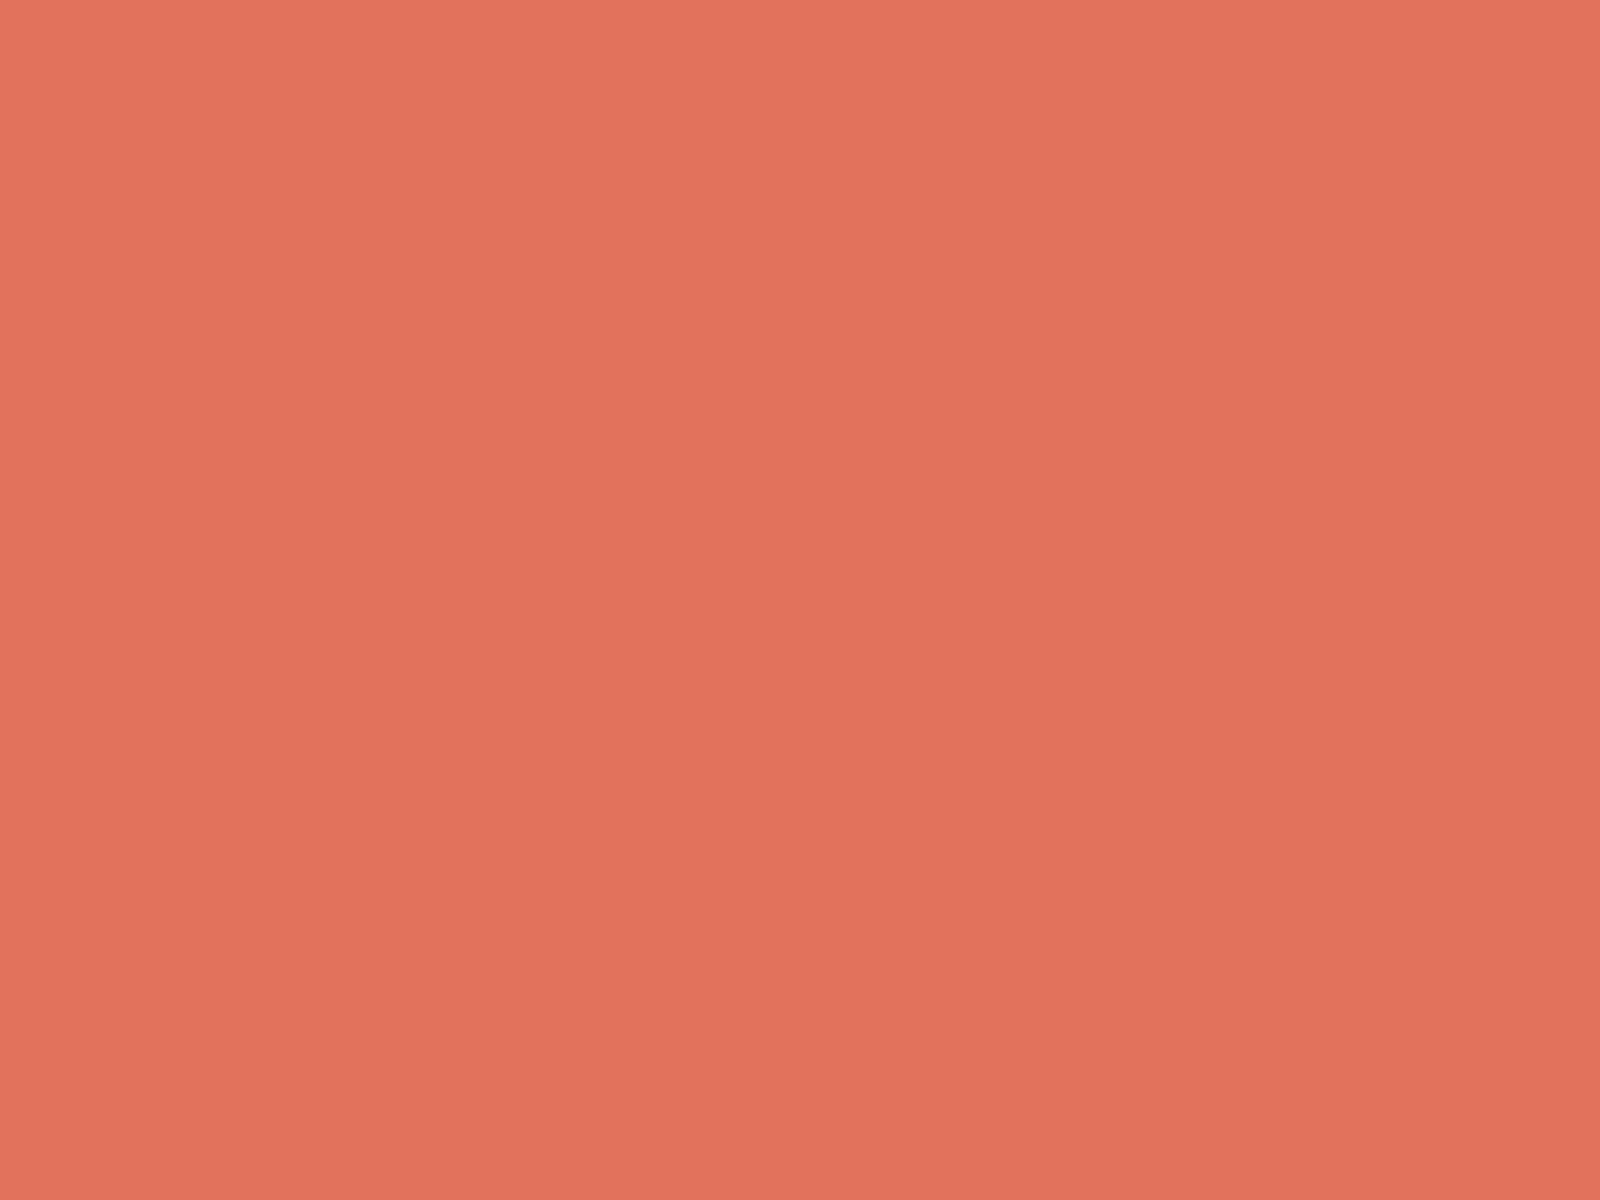 1600x1200 Terra Cotta Solid Color Background